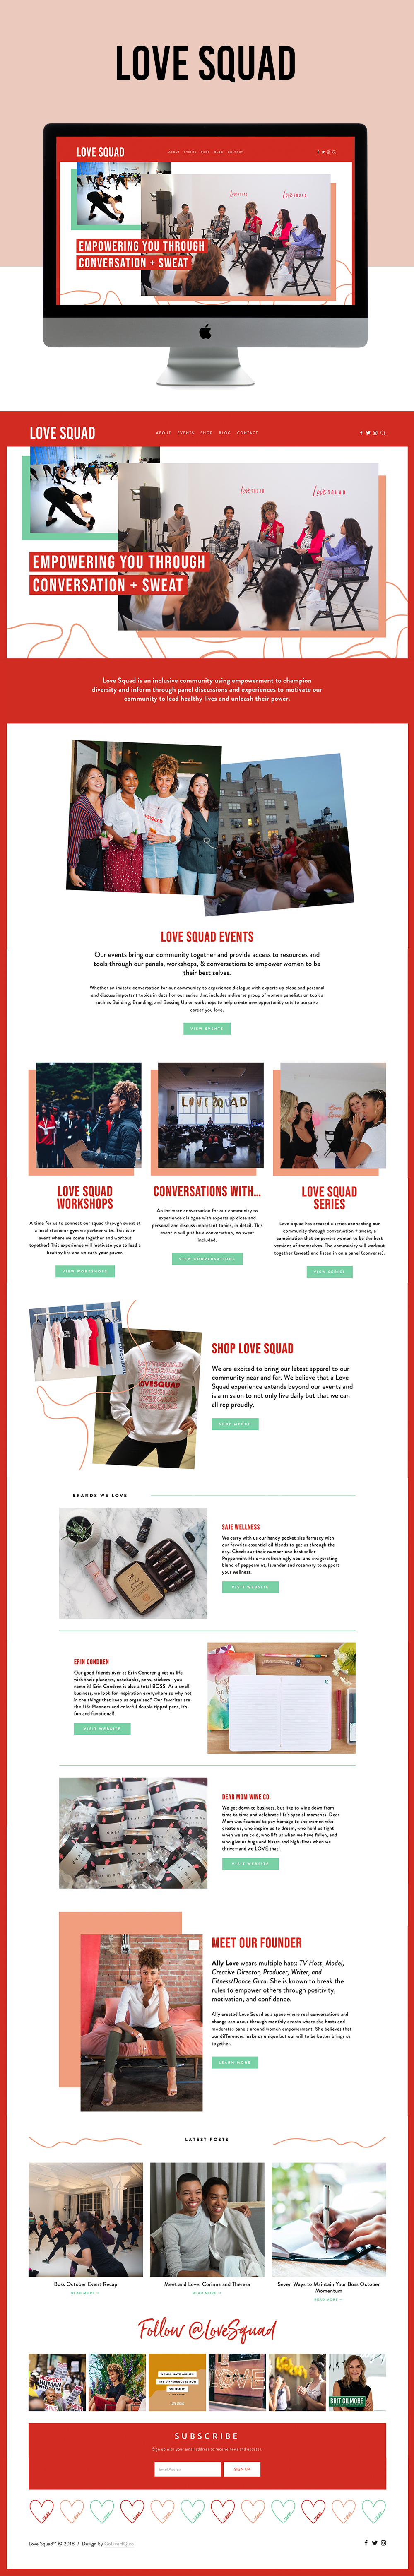 Cheeky, Colorful, Stylish Website Design | Go Live HQ